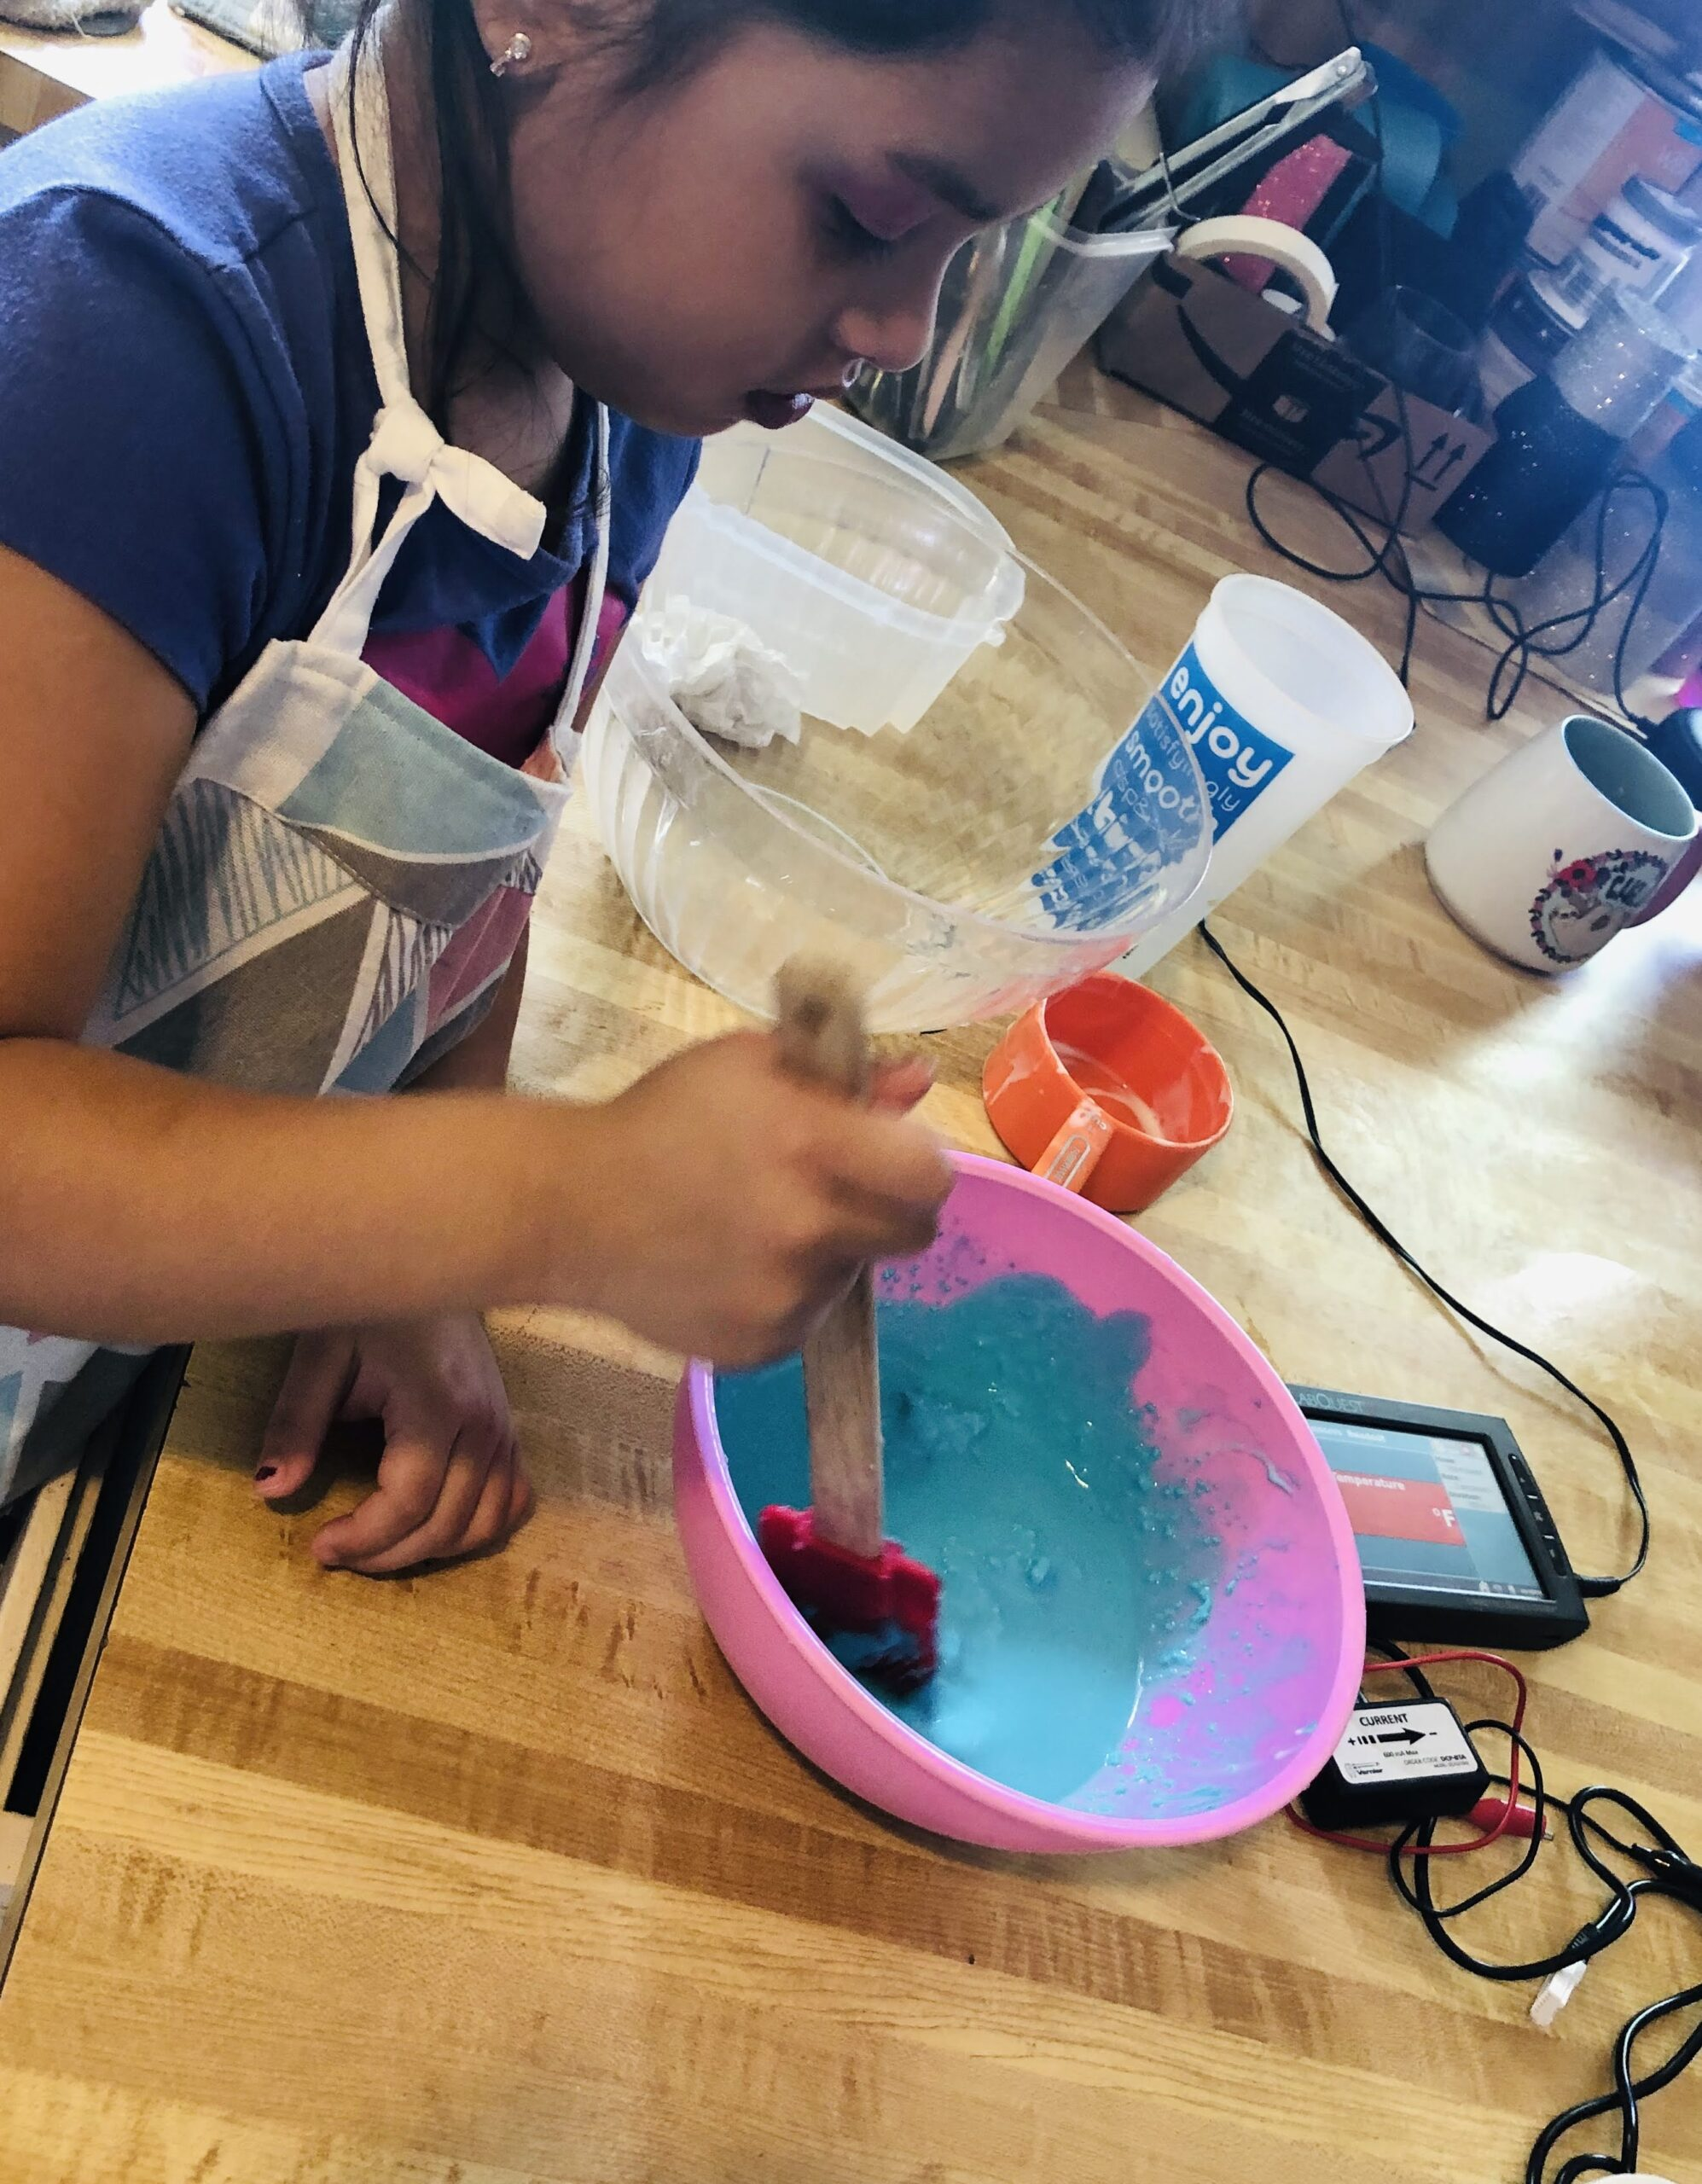 A young girl makes a blue slime mixture